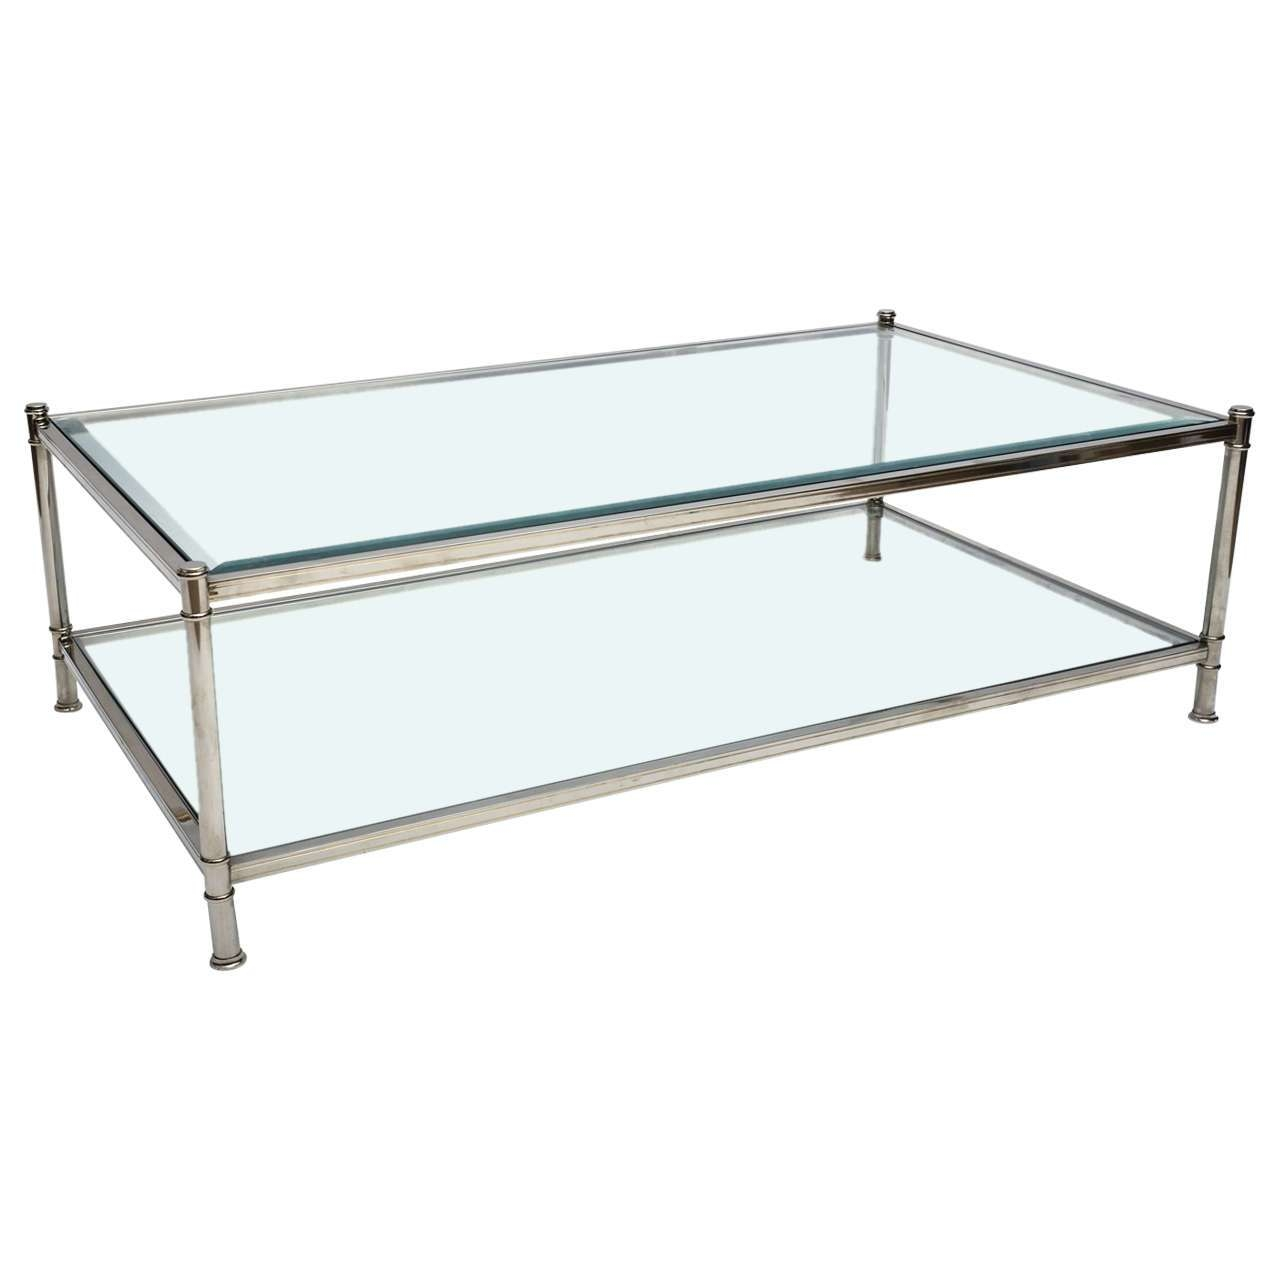 Coffee Tables Ideas: Cool Two Tier Glass Coffee Table Two Tier Inside Most Popular Chrome Glass Coffee Tables (View 11 of 20)